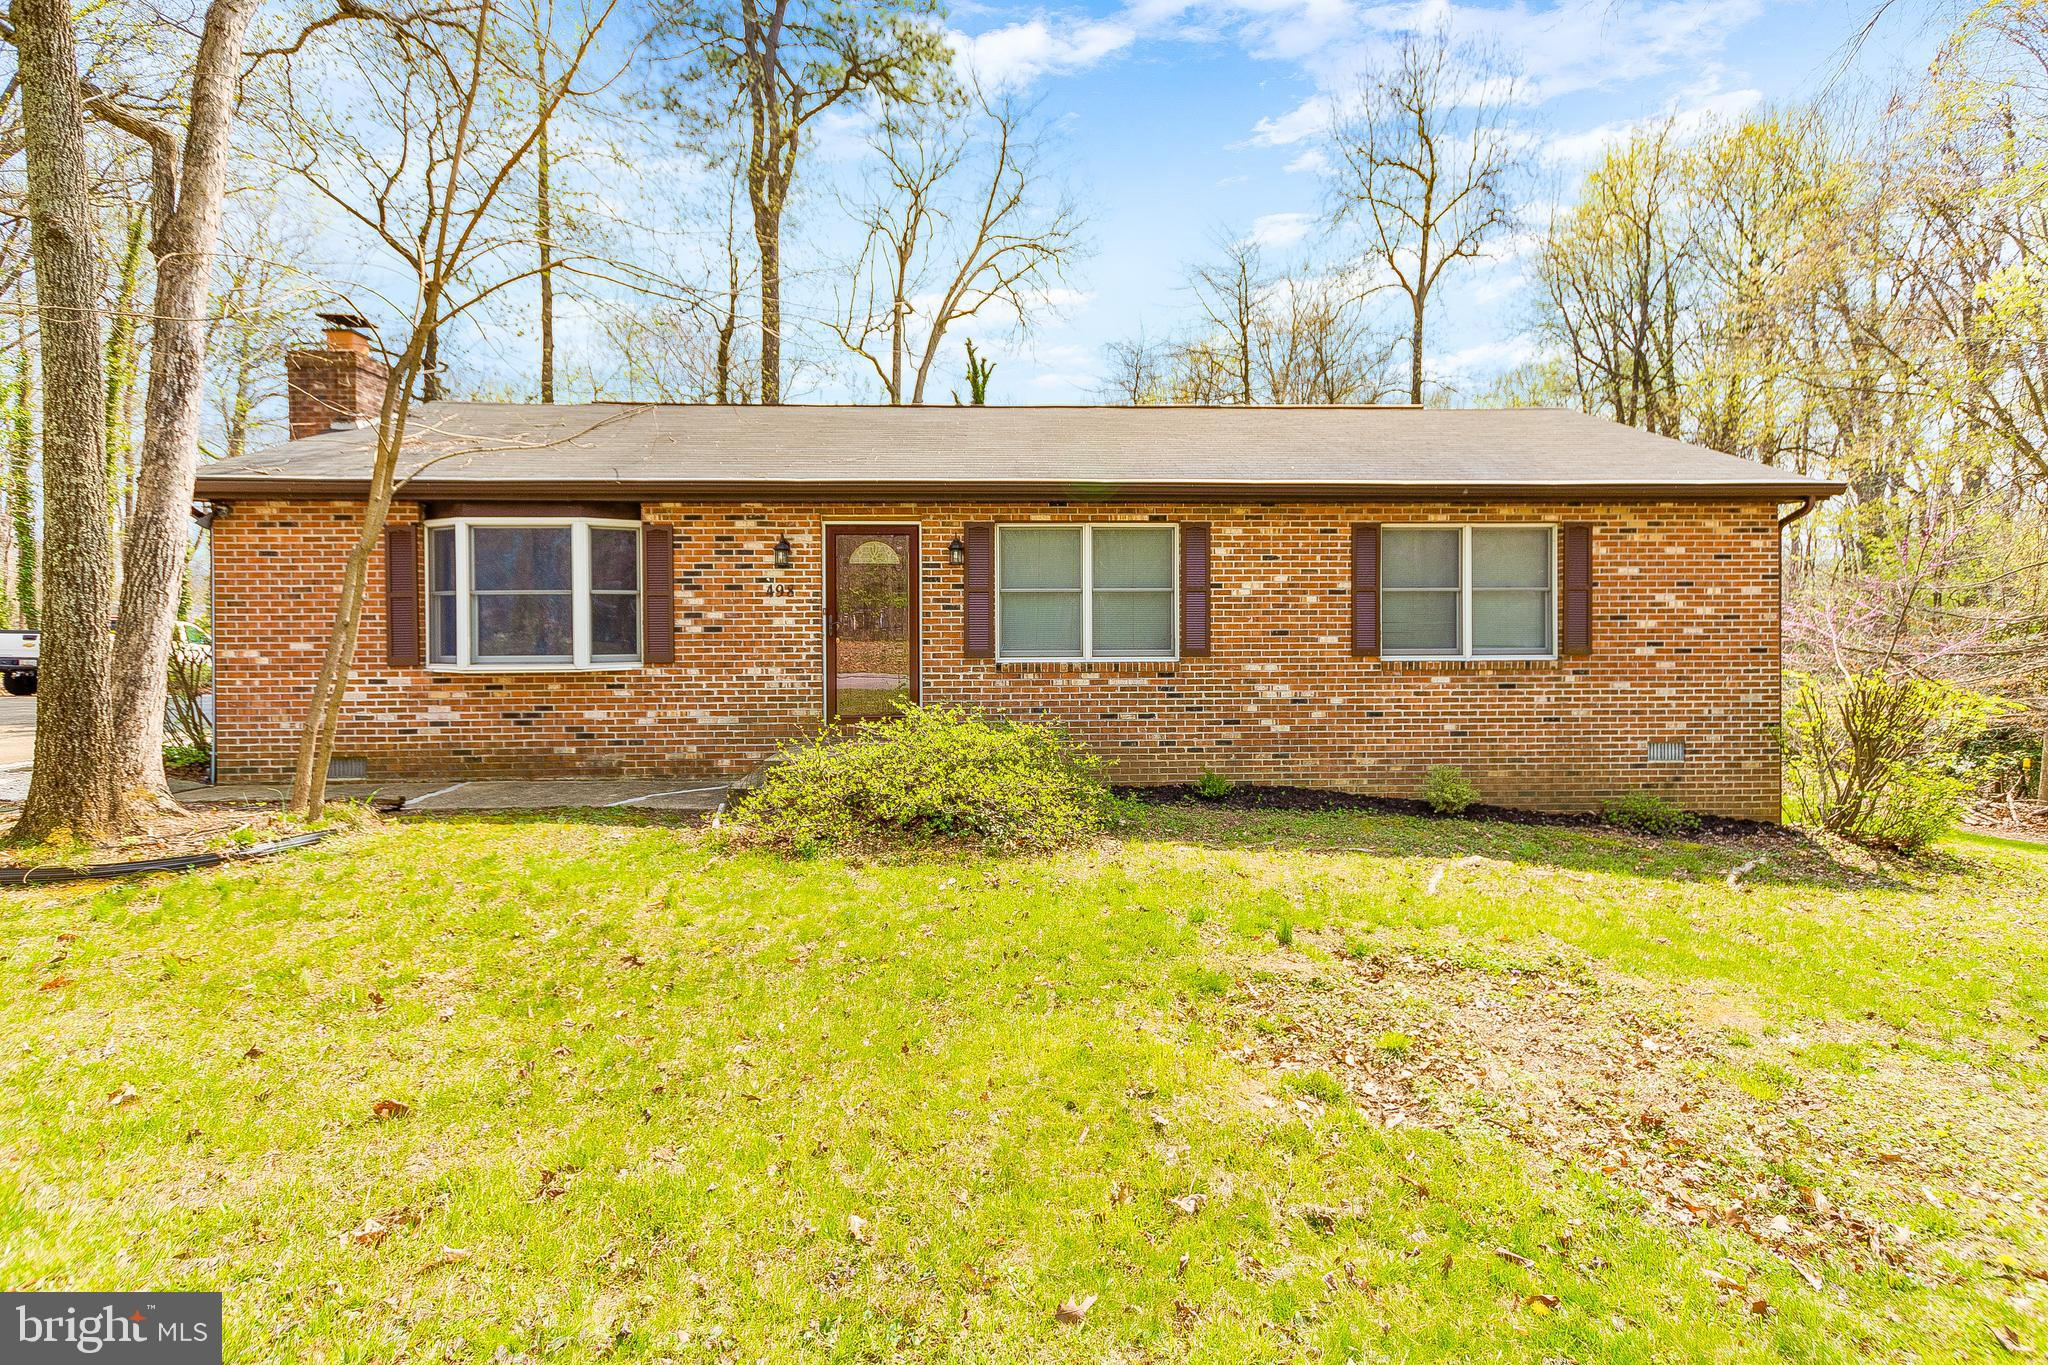 498 Round Up Rd, Lusby, MD, 20657